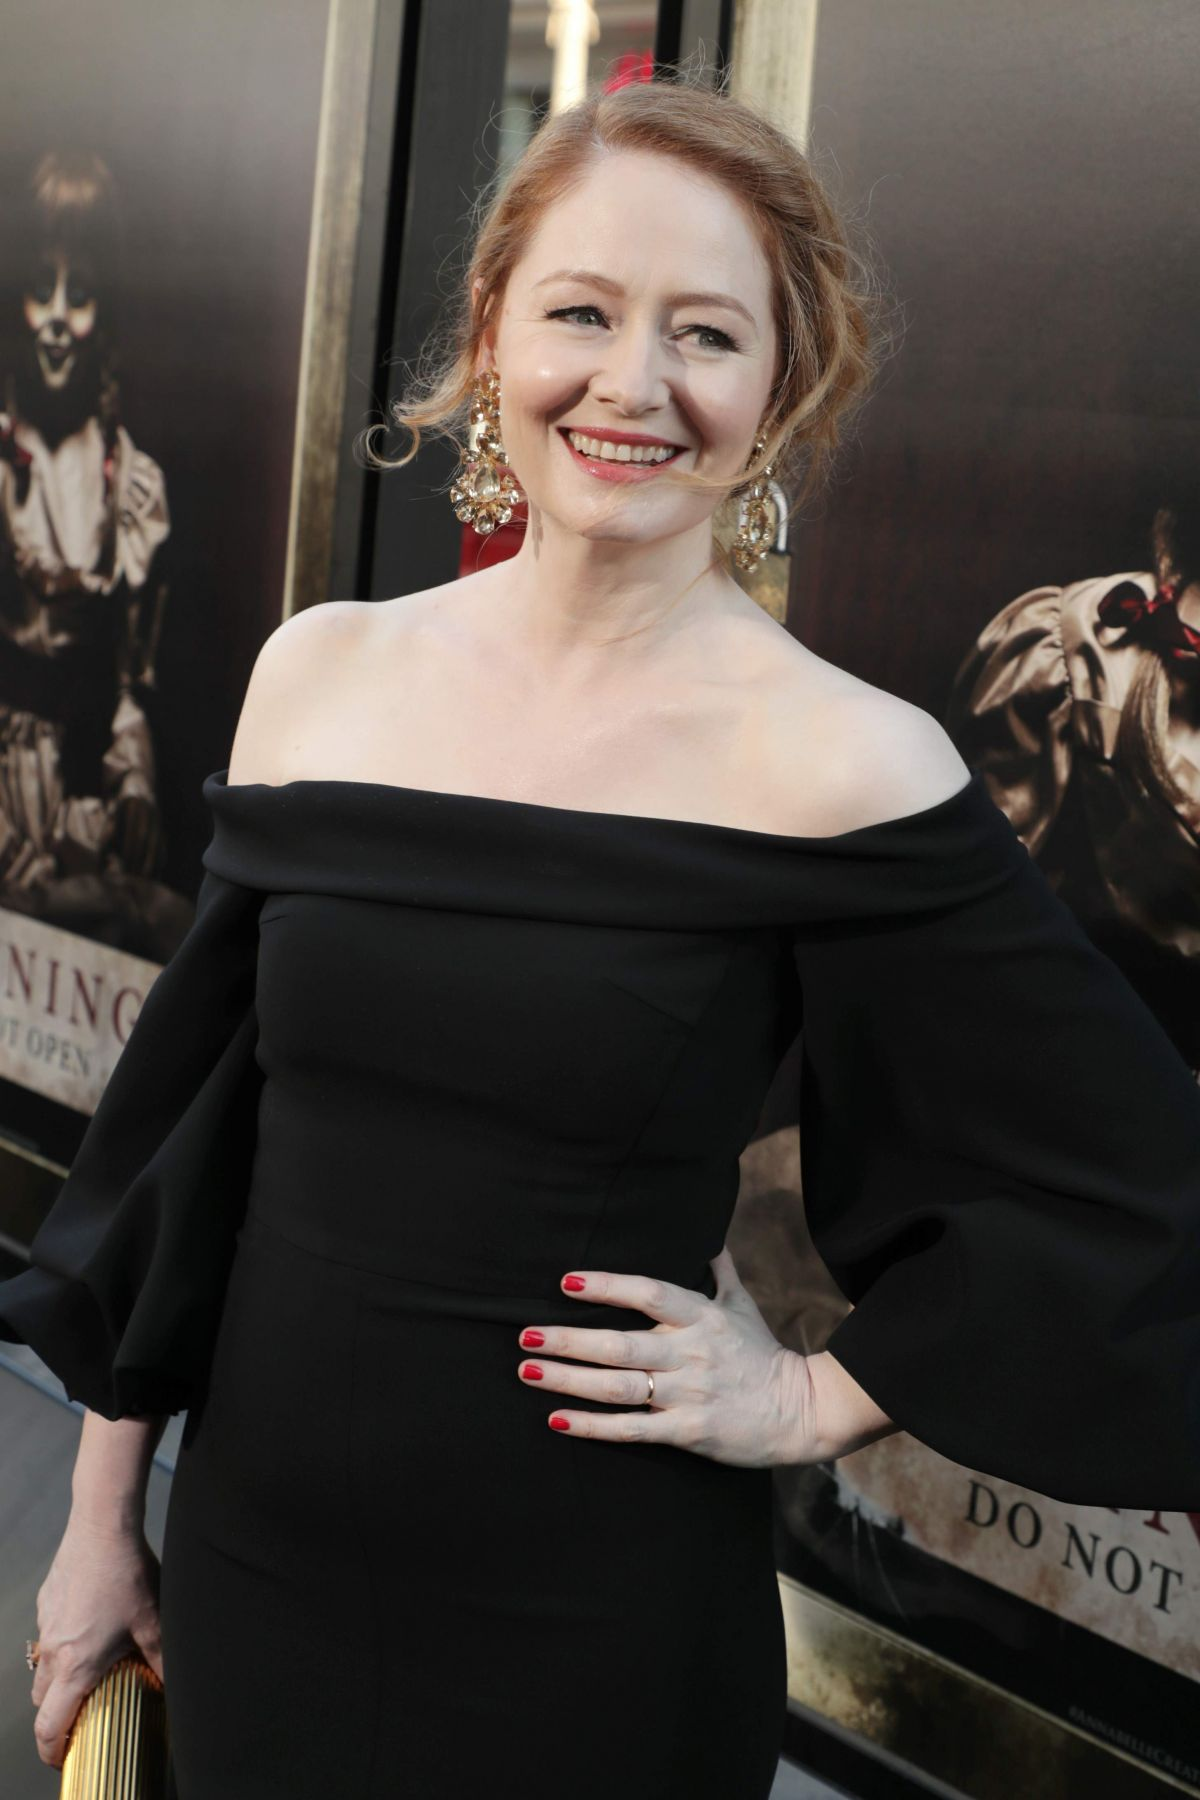 MIRANDA OTTO at Annabelle Creation Premiere in Los Angeles 08/07/2017